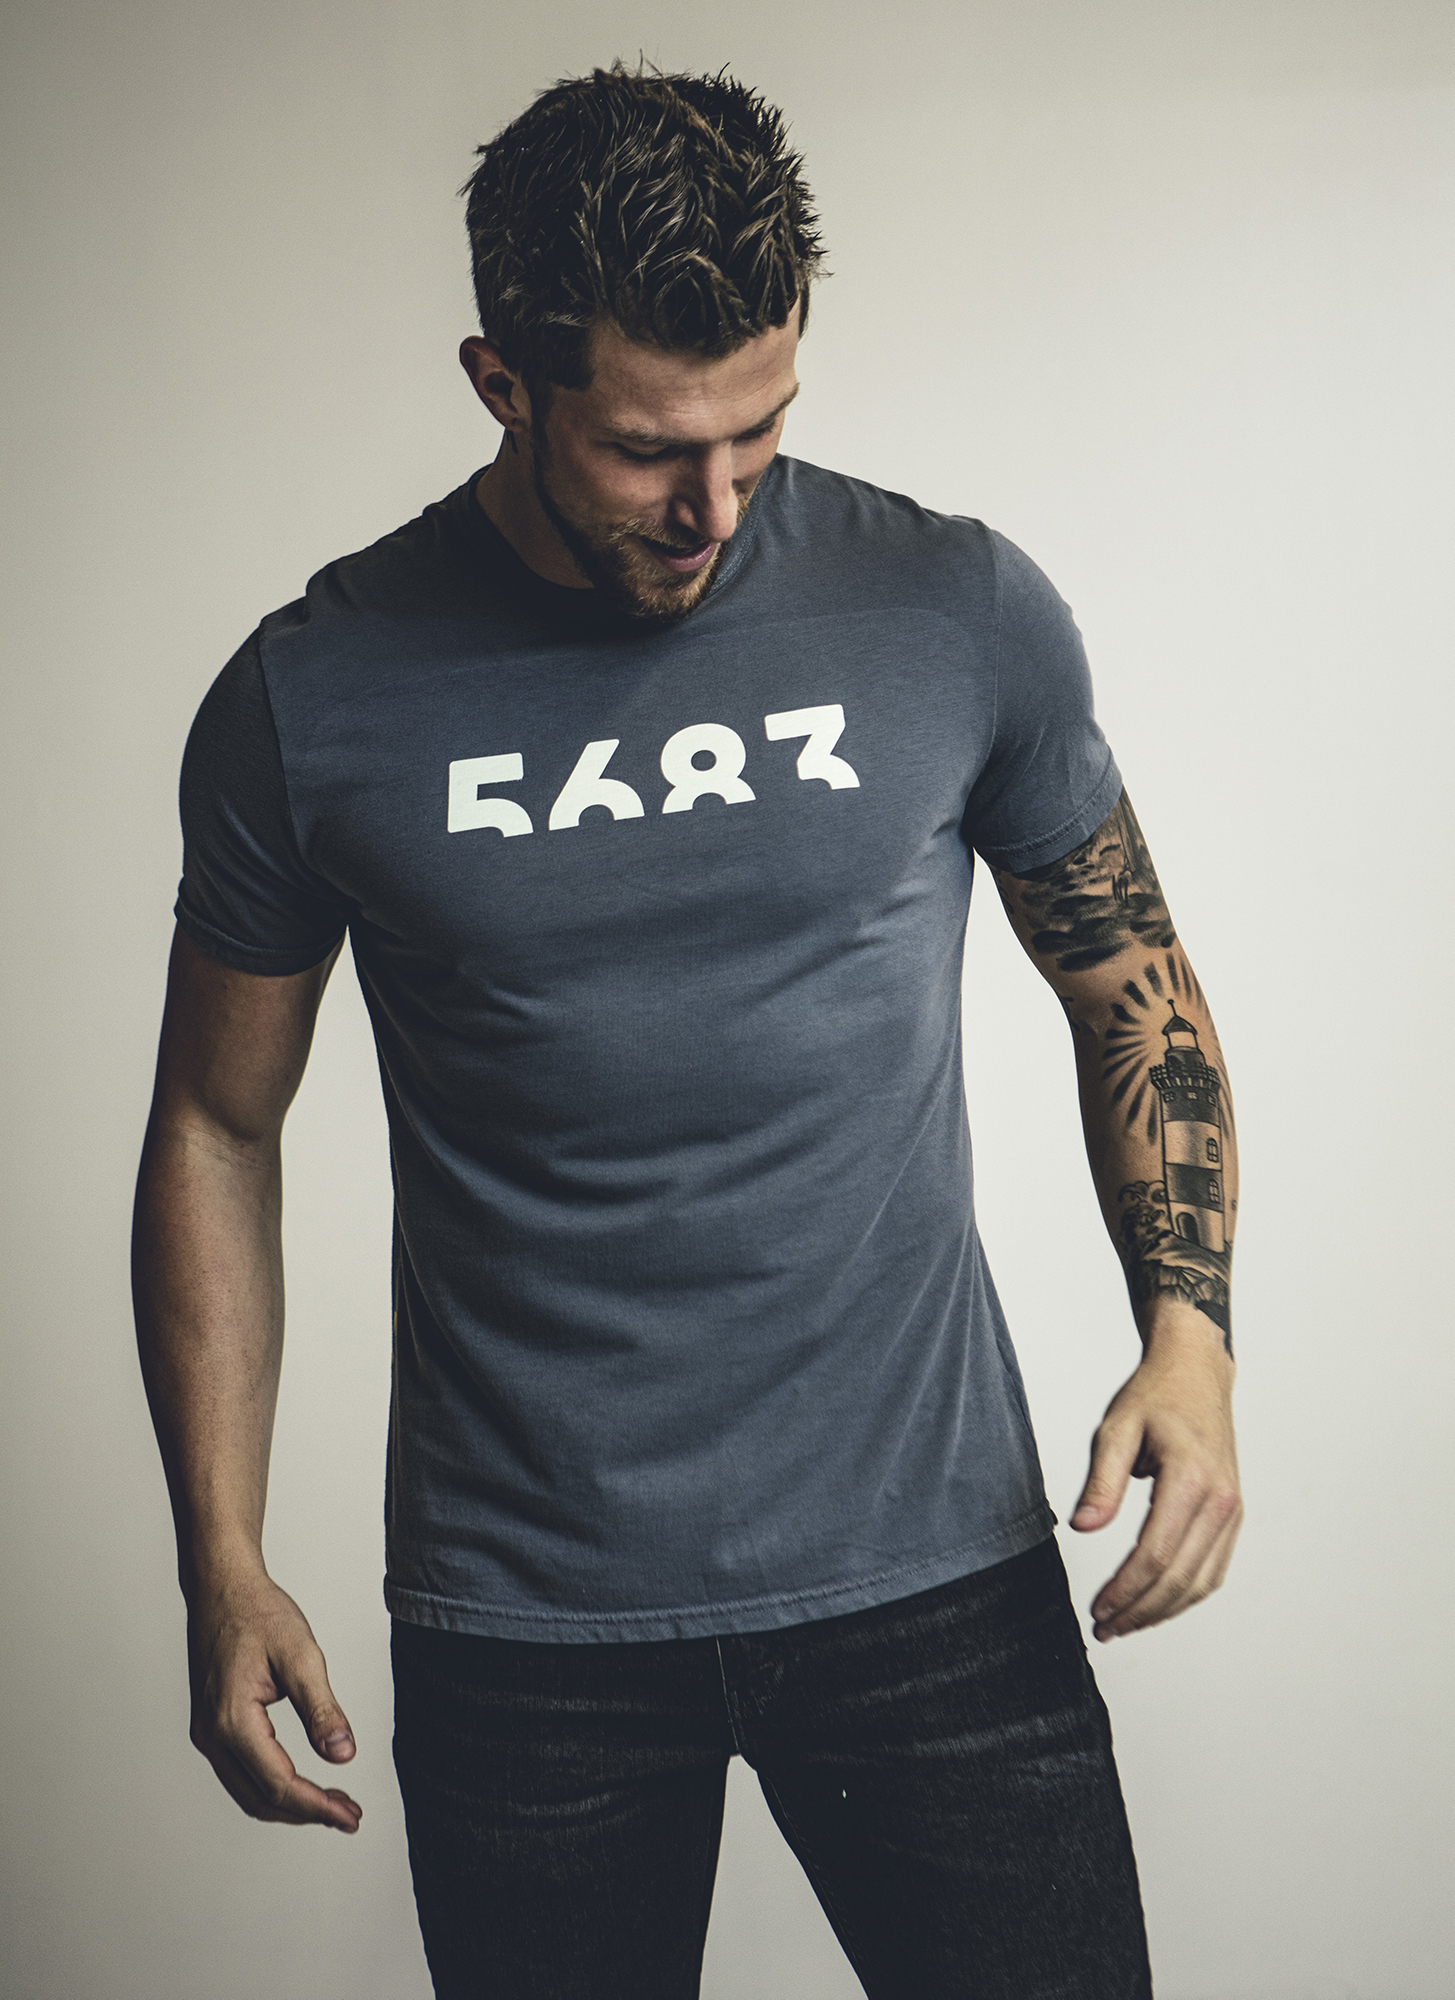 5683-Mens-Half-Of-My-Heart-Tee-Front